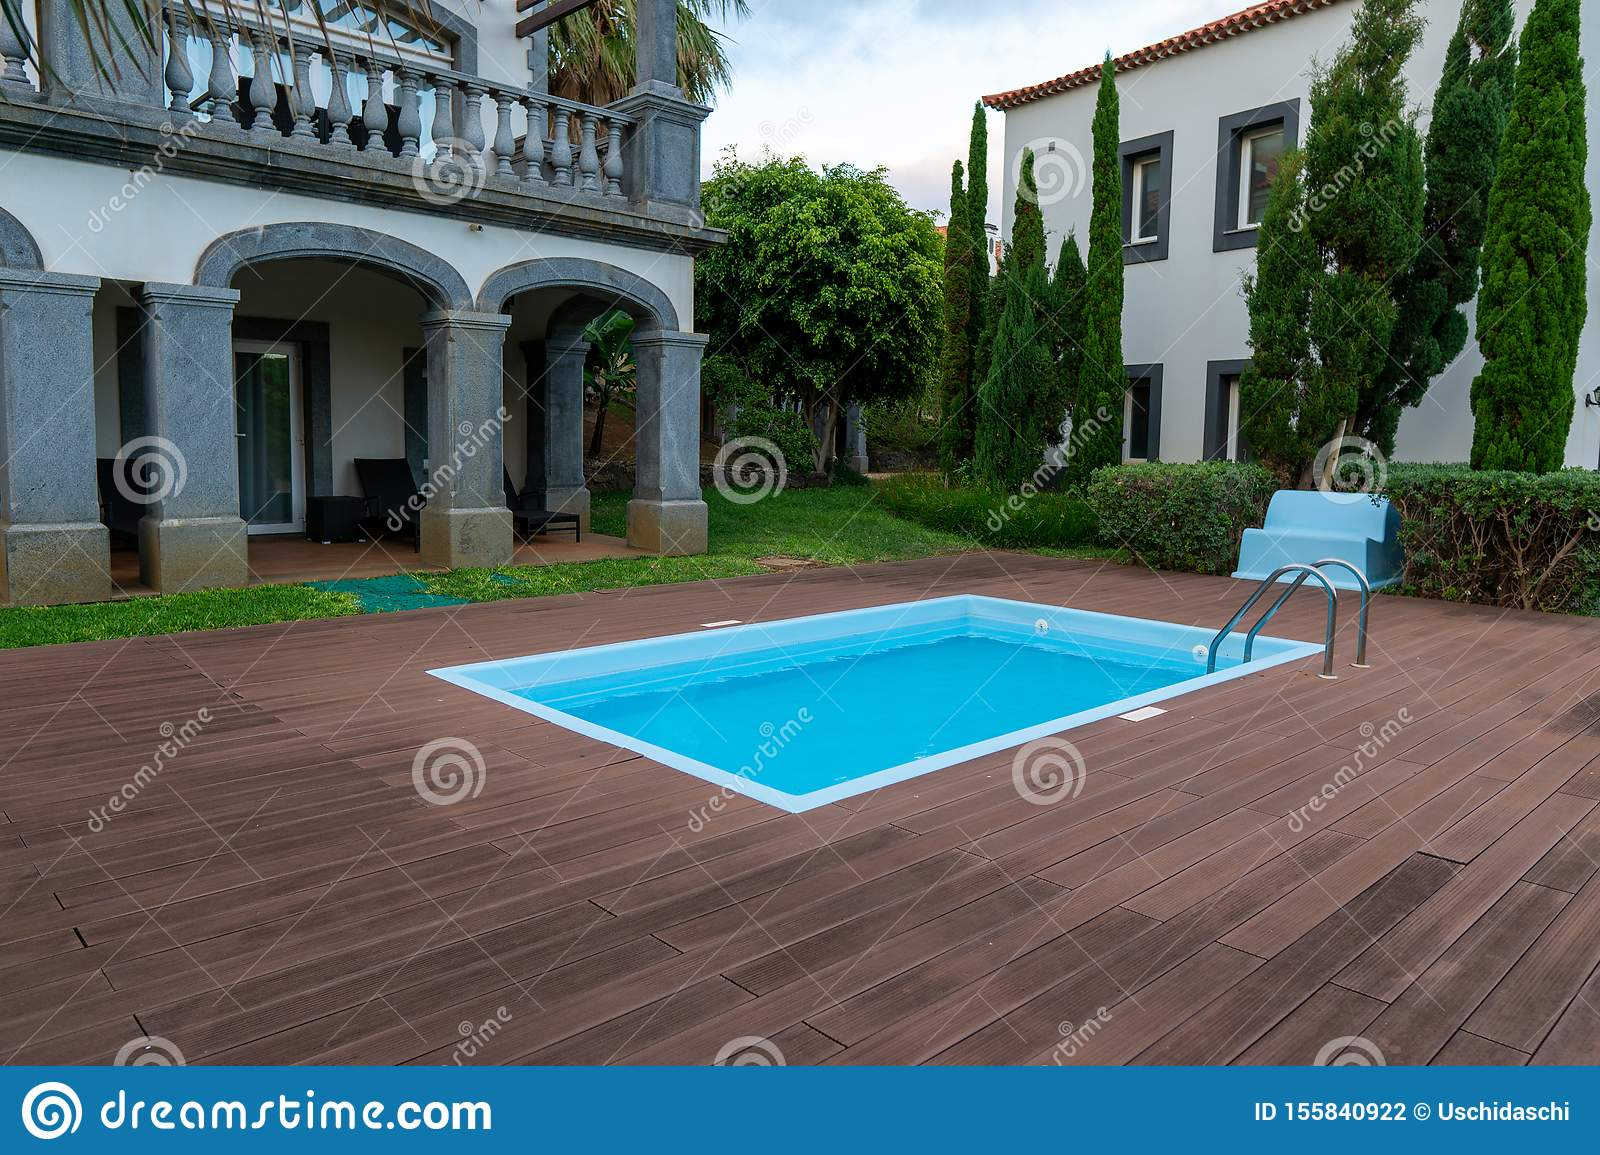 Swimming Pool Design With Wood Deck And Modern Villa Stock Photo Image Of Garden Estate 155840922